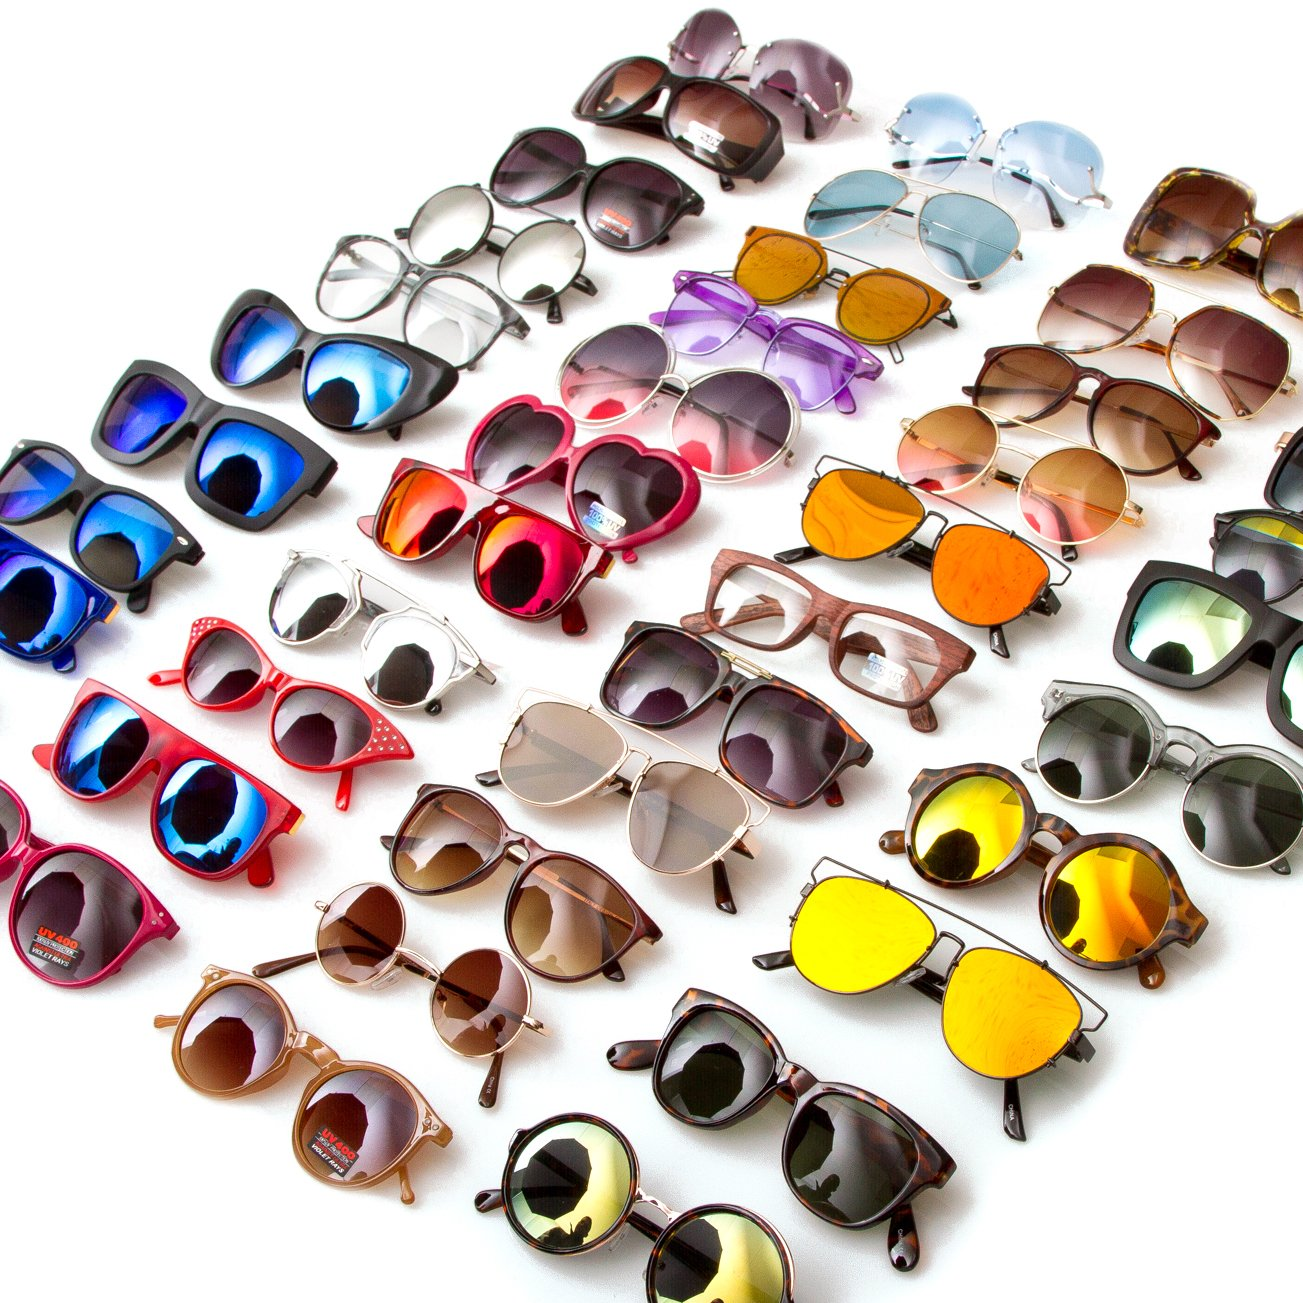 50 Lot Sunglasses